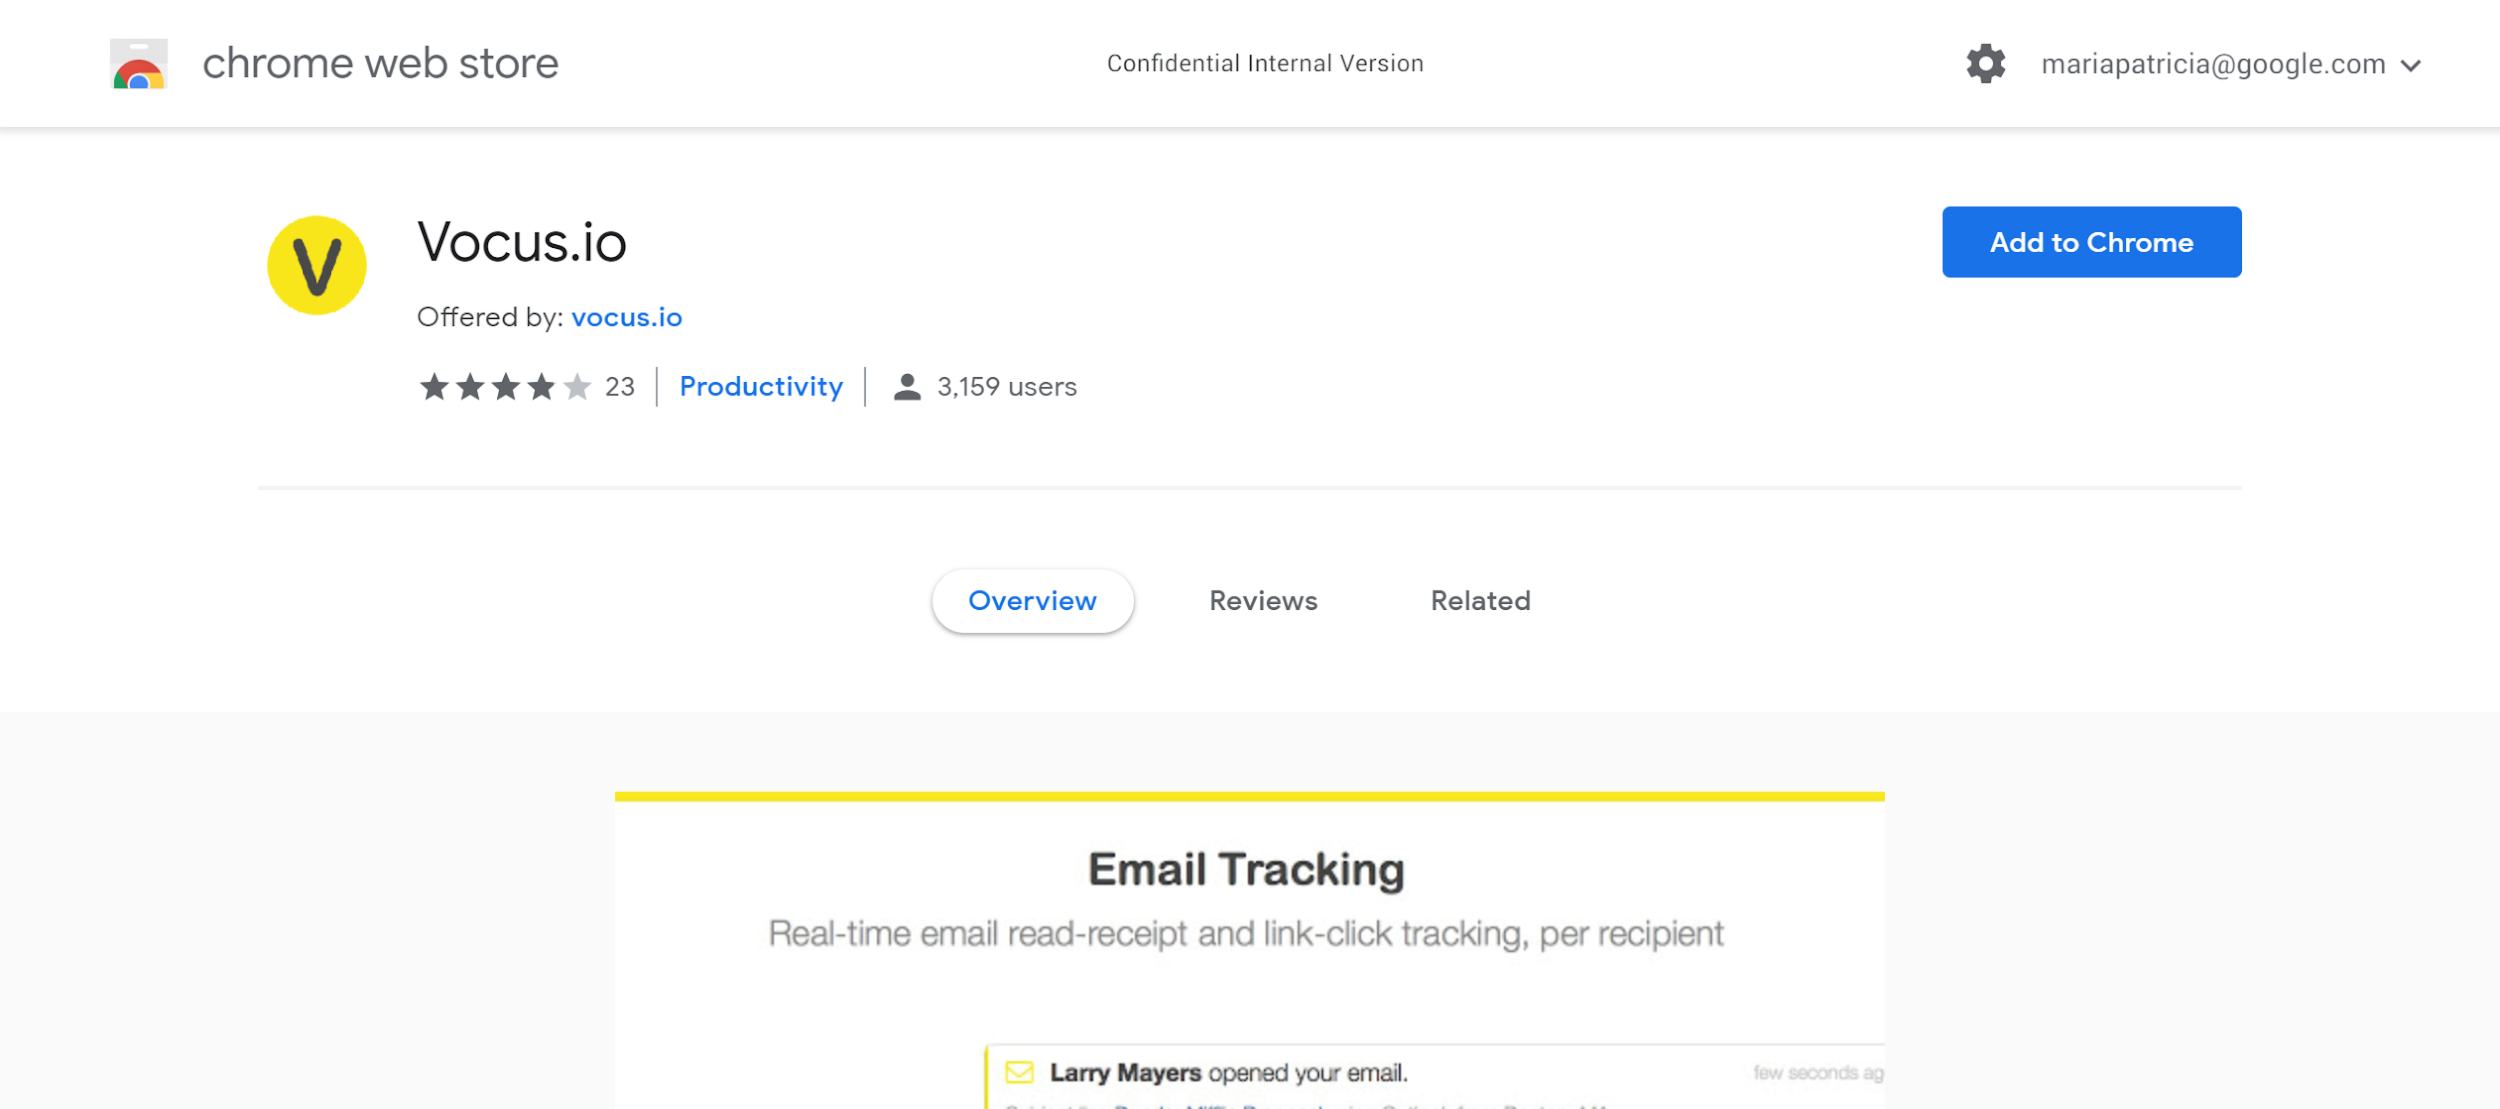 Mega Comparison] 10+ Email Tracking Tools: Best Gmail